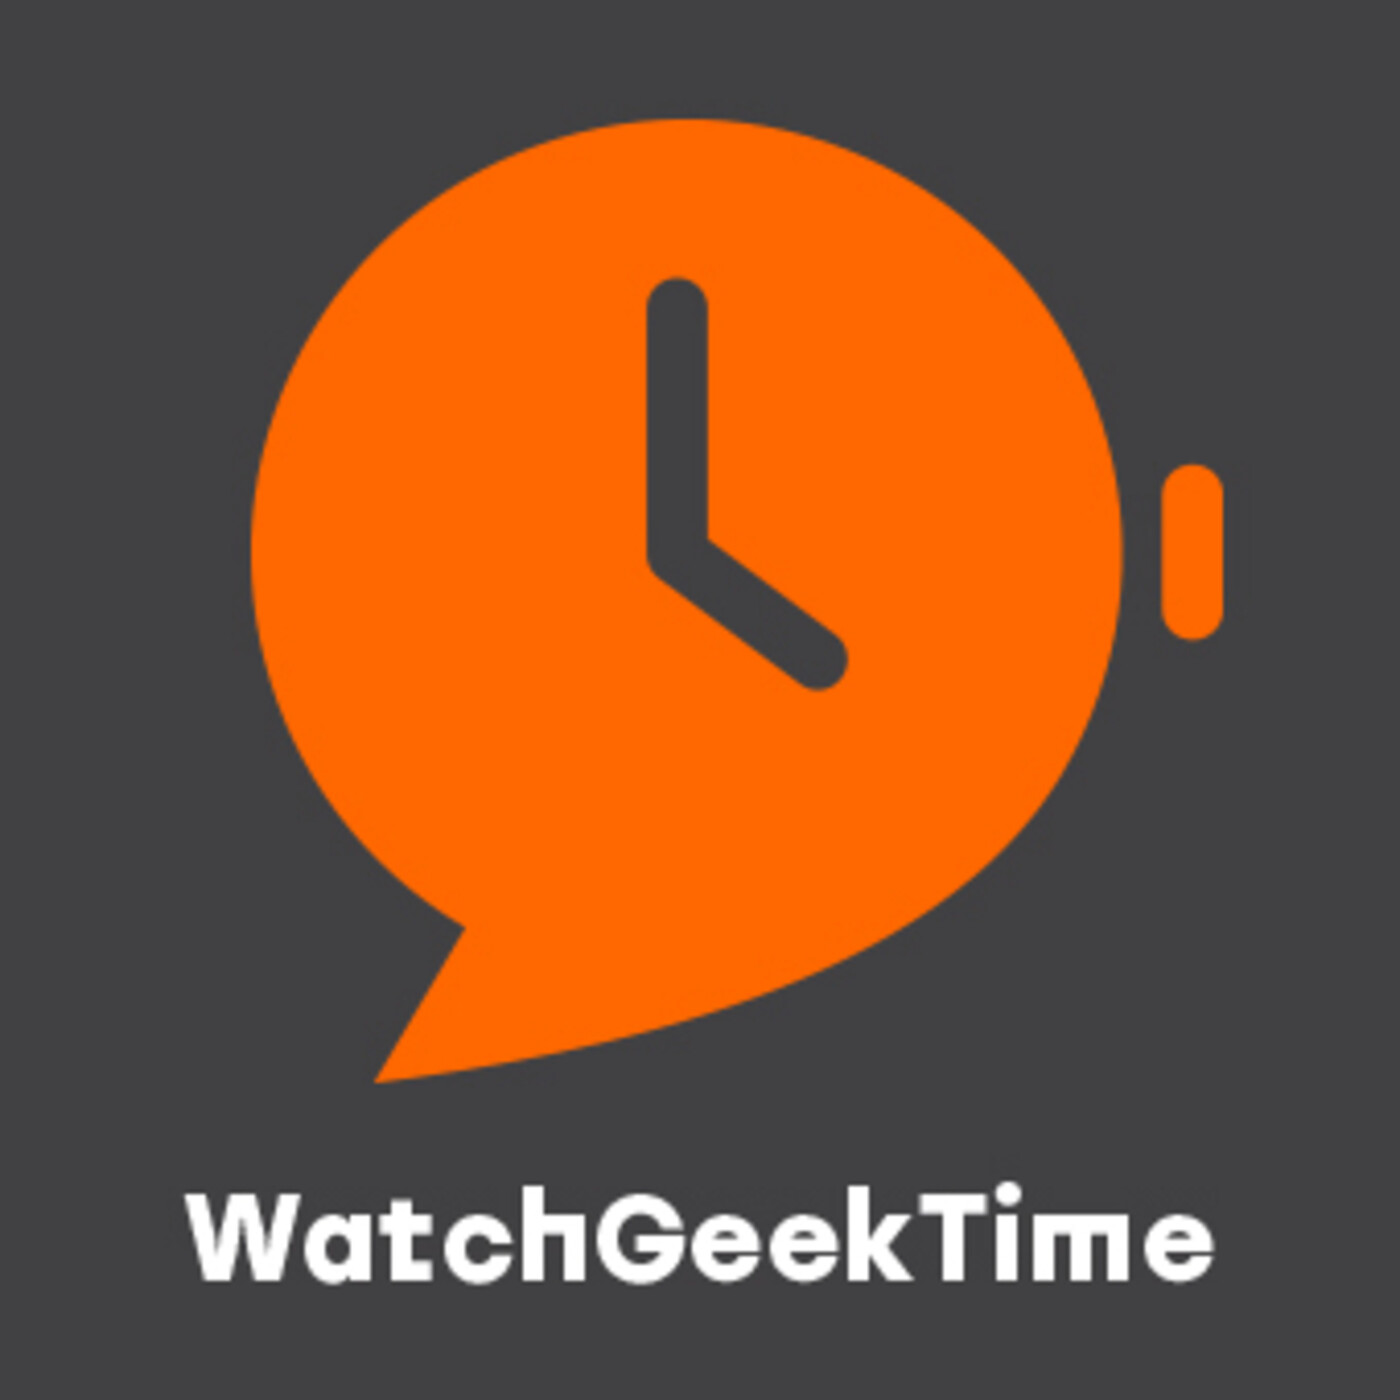 WatchGeekTime - Episode 68 - Revisiting Richard Mille / Jump Hours and Wandering Minutes